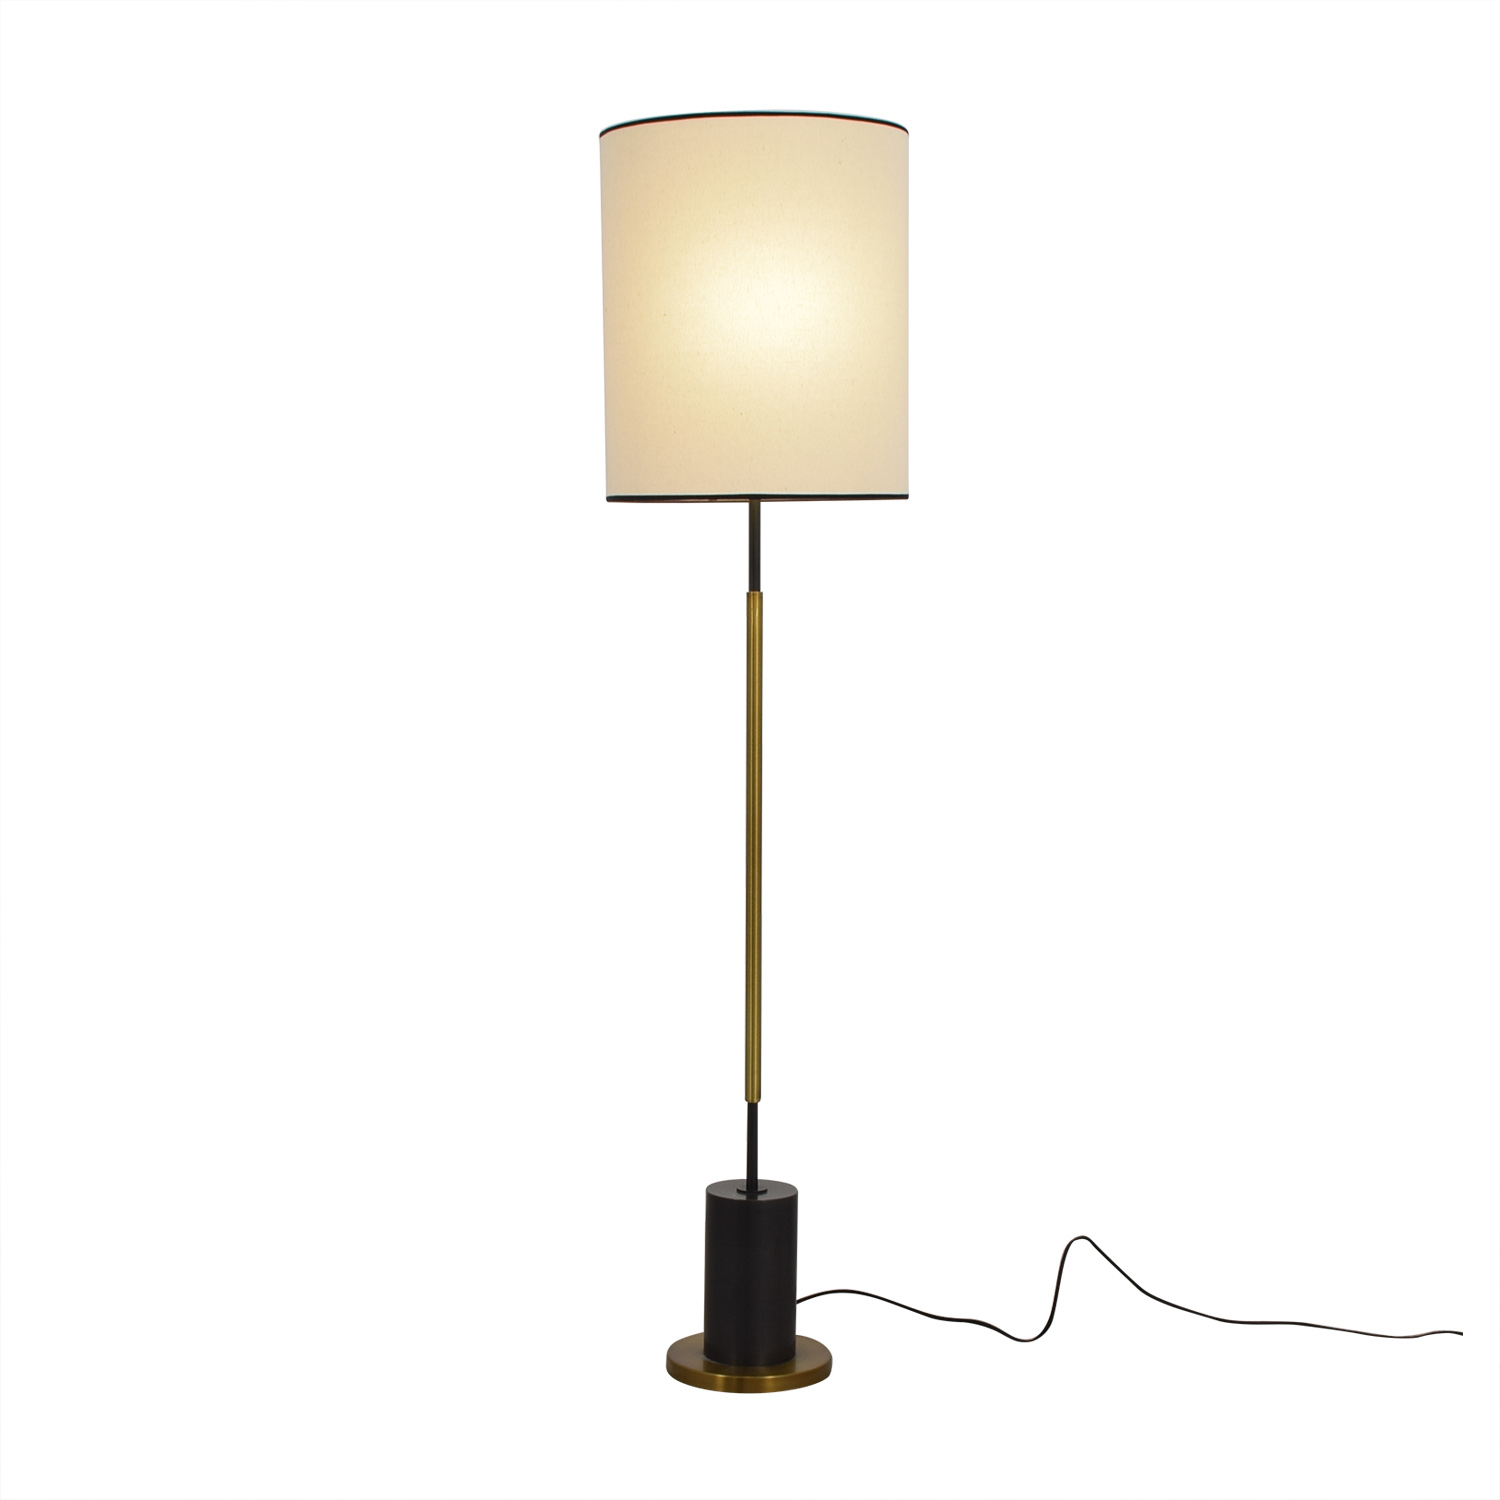 West Elm West Elm + Rejuvenation Cylinder Antique Brass and Linen Floor Lamp dimensions